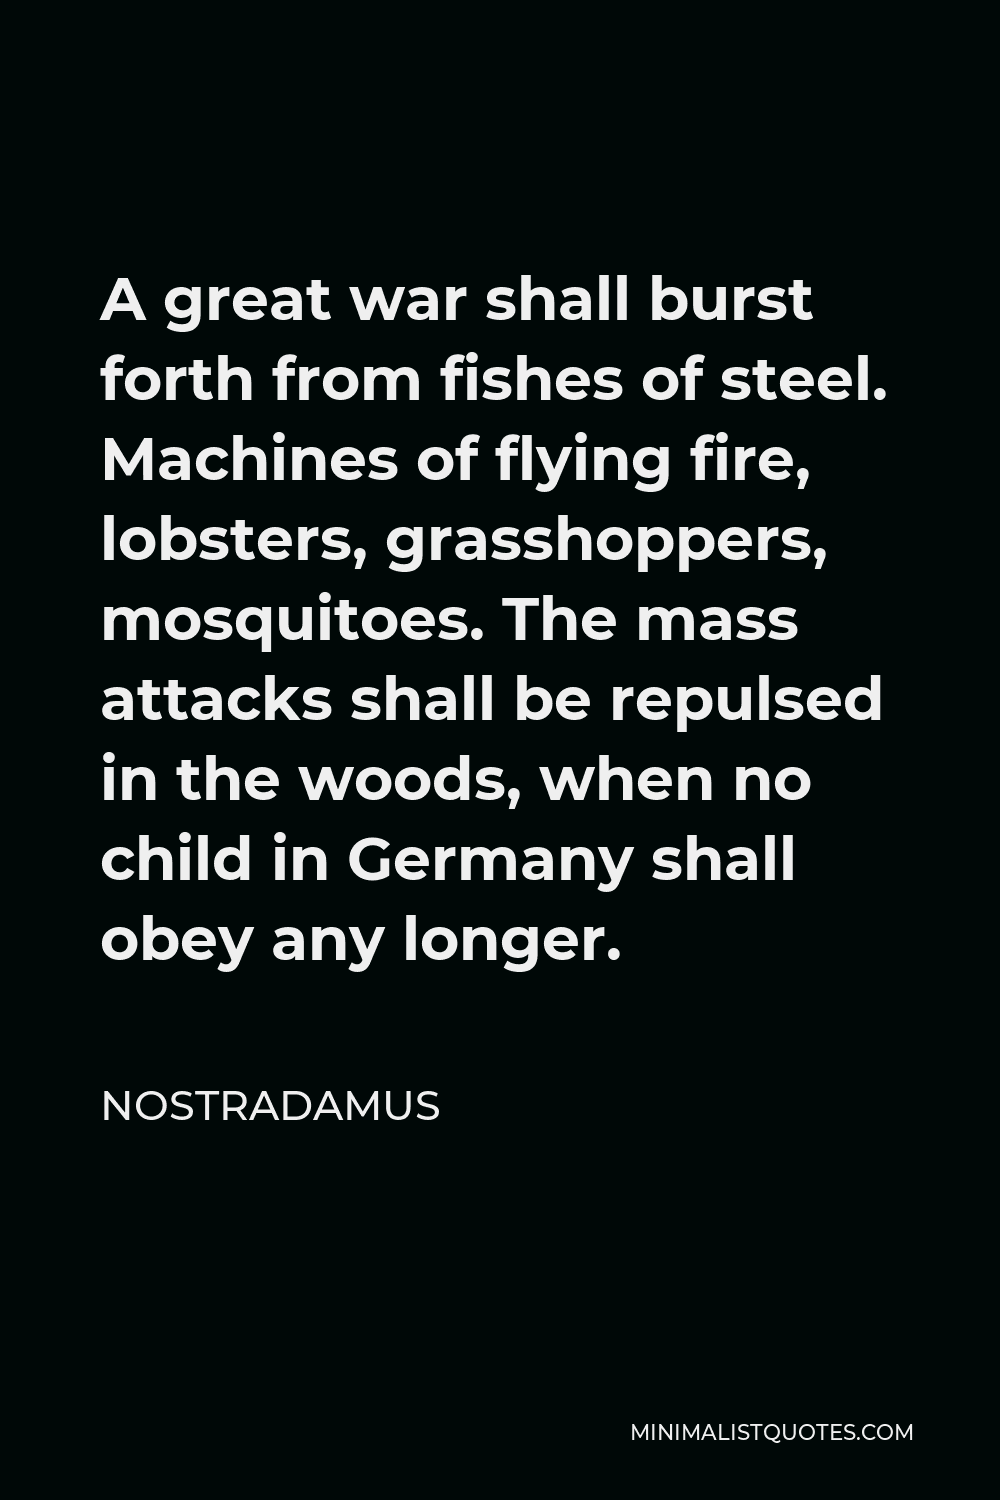 Nostradamus Quote - A great war shall burst forth from fishes of steel. Machines of flying fire, lobsters, grasshoppers, mosquitoes. The mass attacks shall be repulsed in the woods, when no child in Germany shall obey any longer.